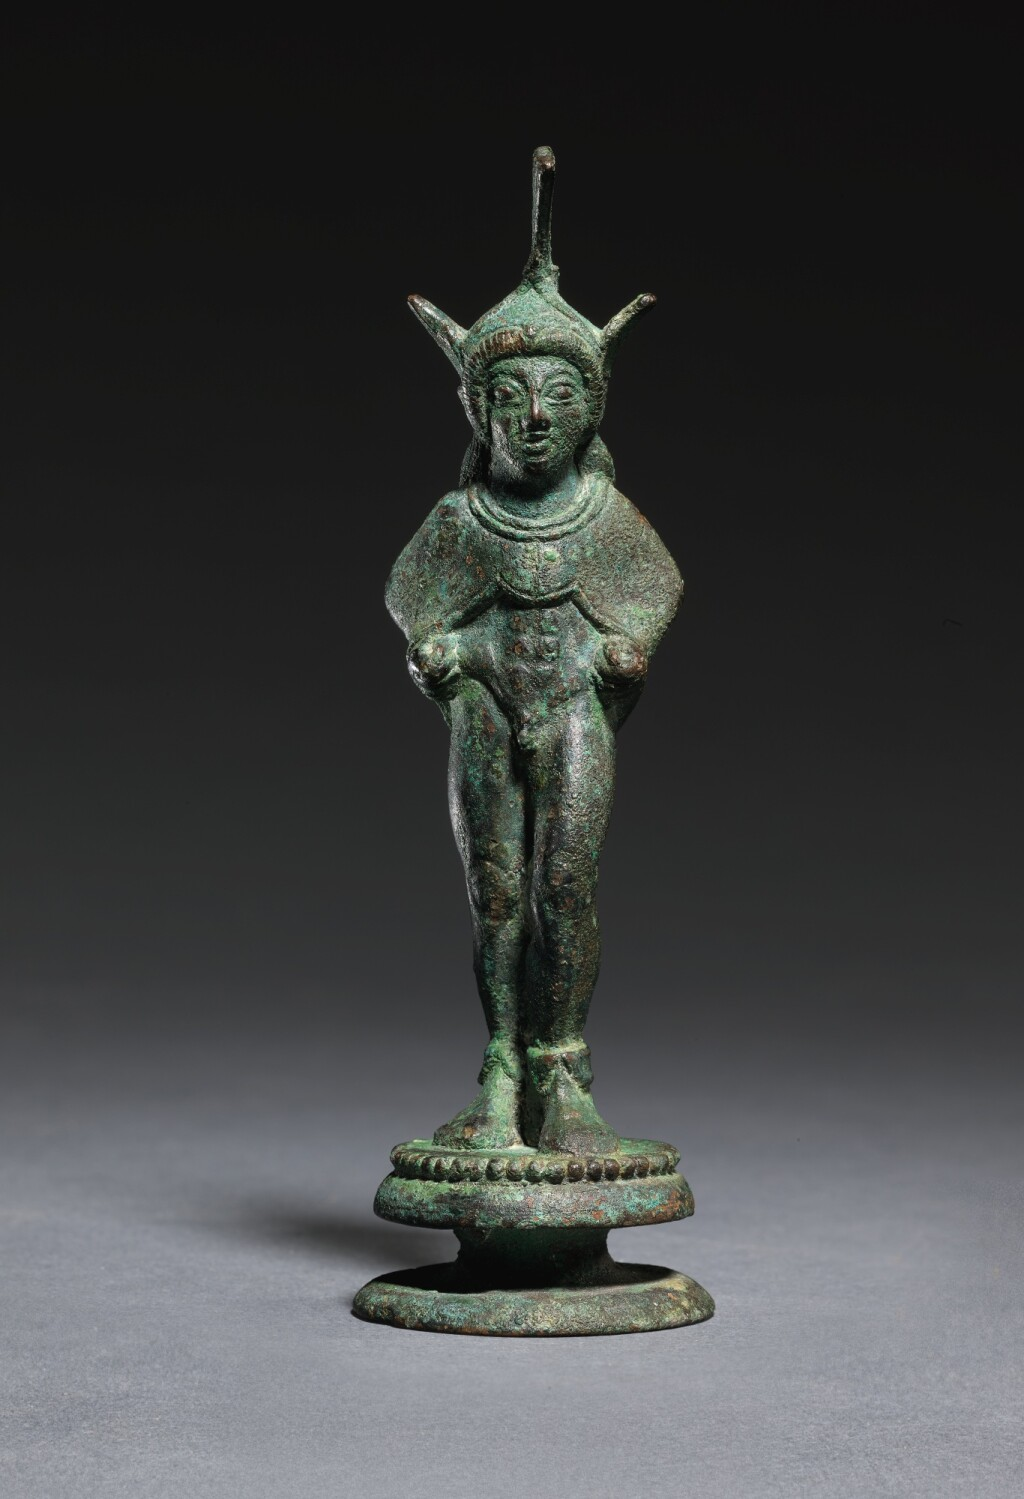 AN ETRUSCAN BRONZE FIGURE OF A WARRIOR, CIRCA 500-475 B.C.